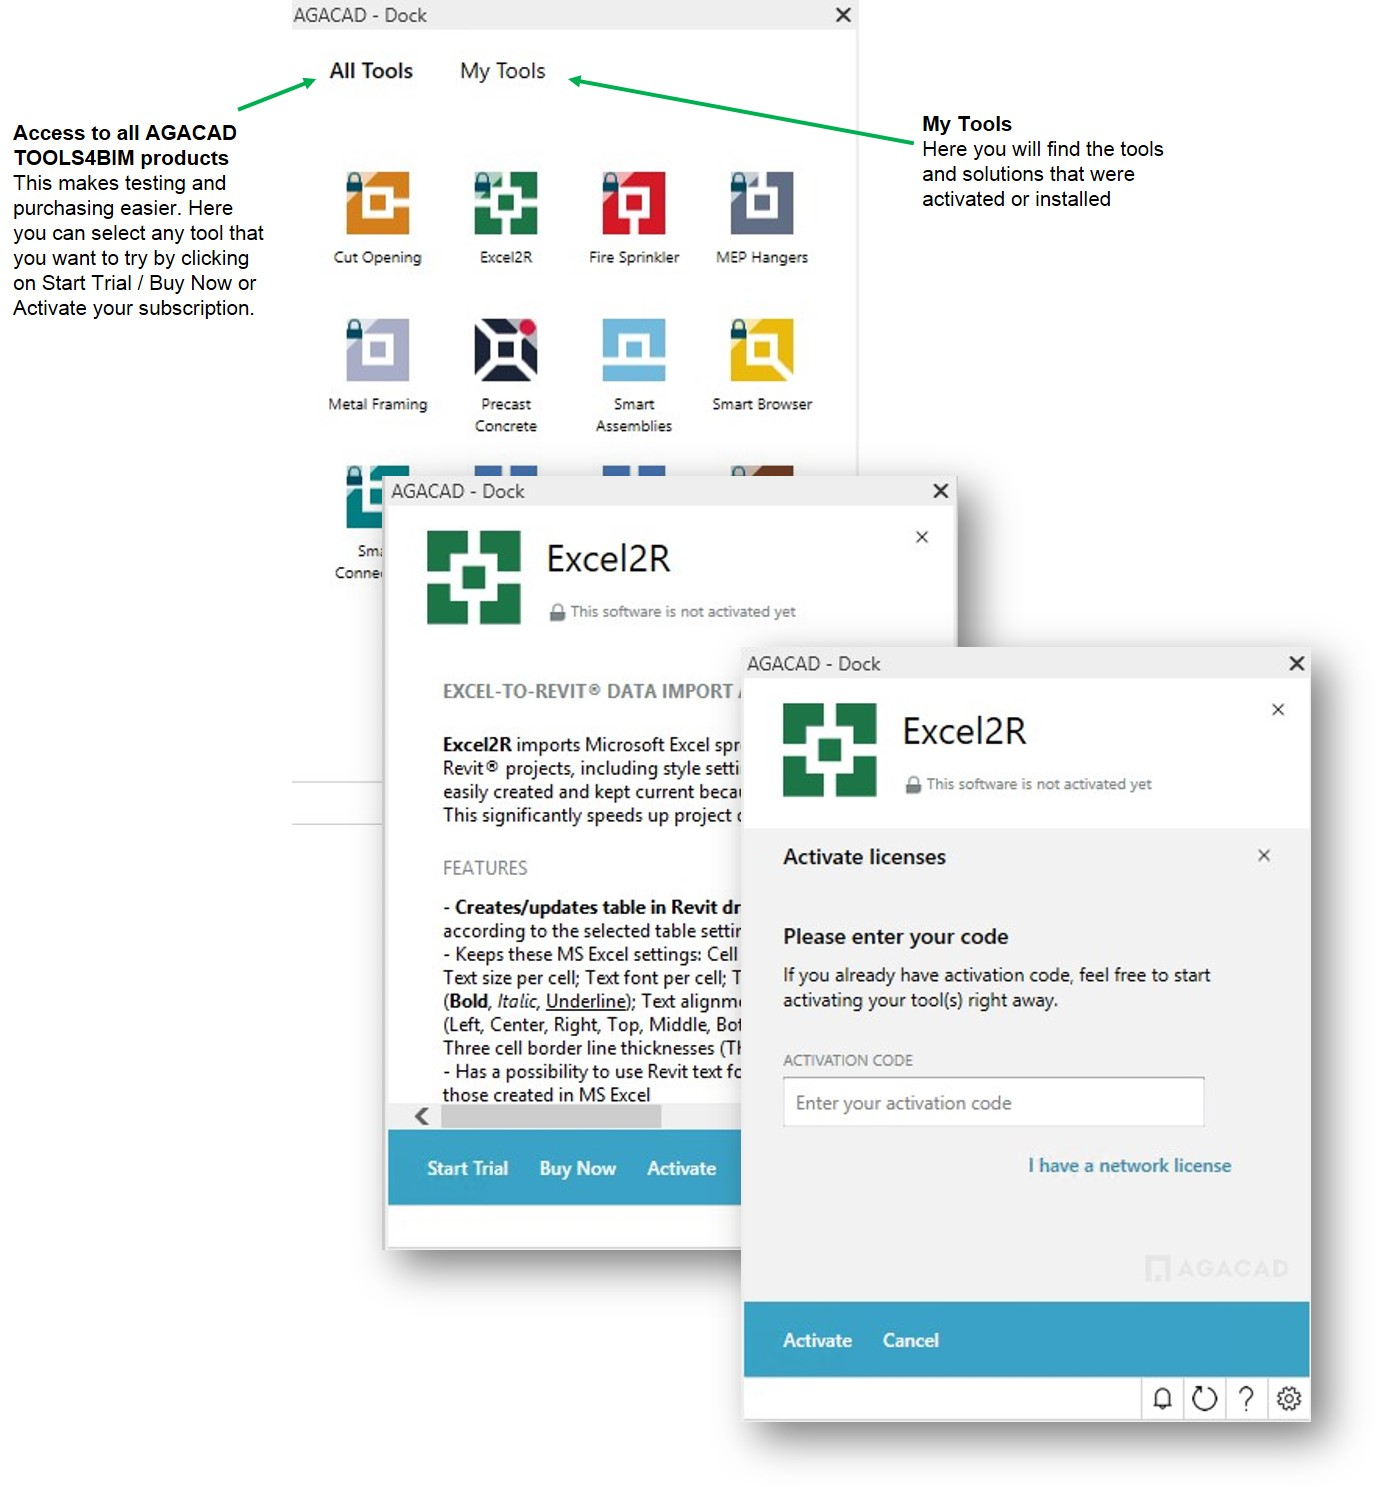 AGACAD TOOLS4BIM Dock - separate interactive window in Revit getting to ALL Trials, Tools, Updates